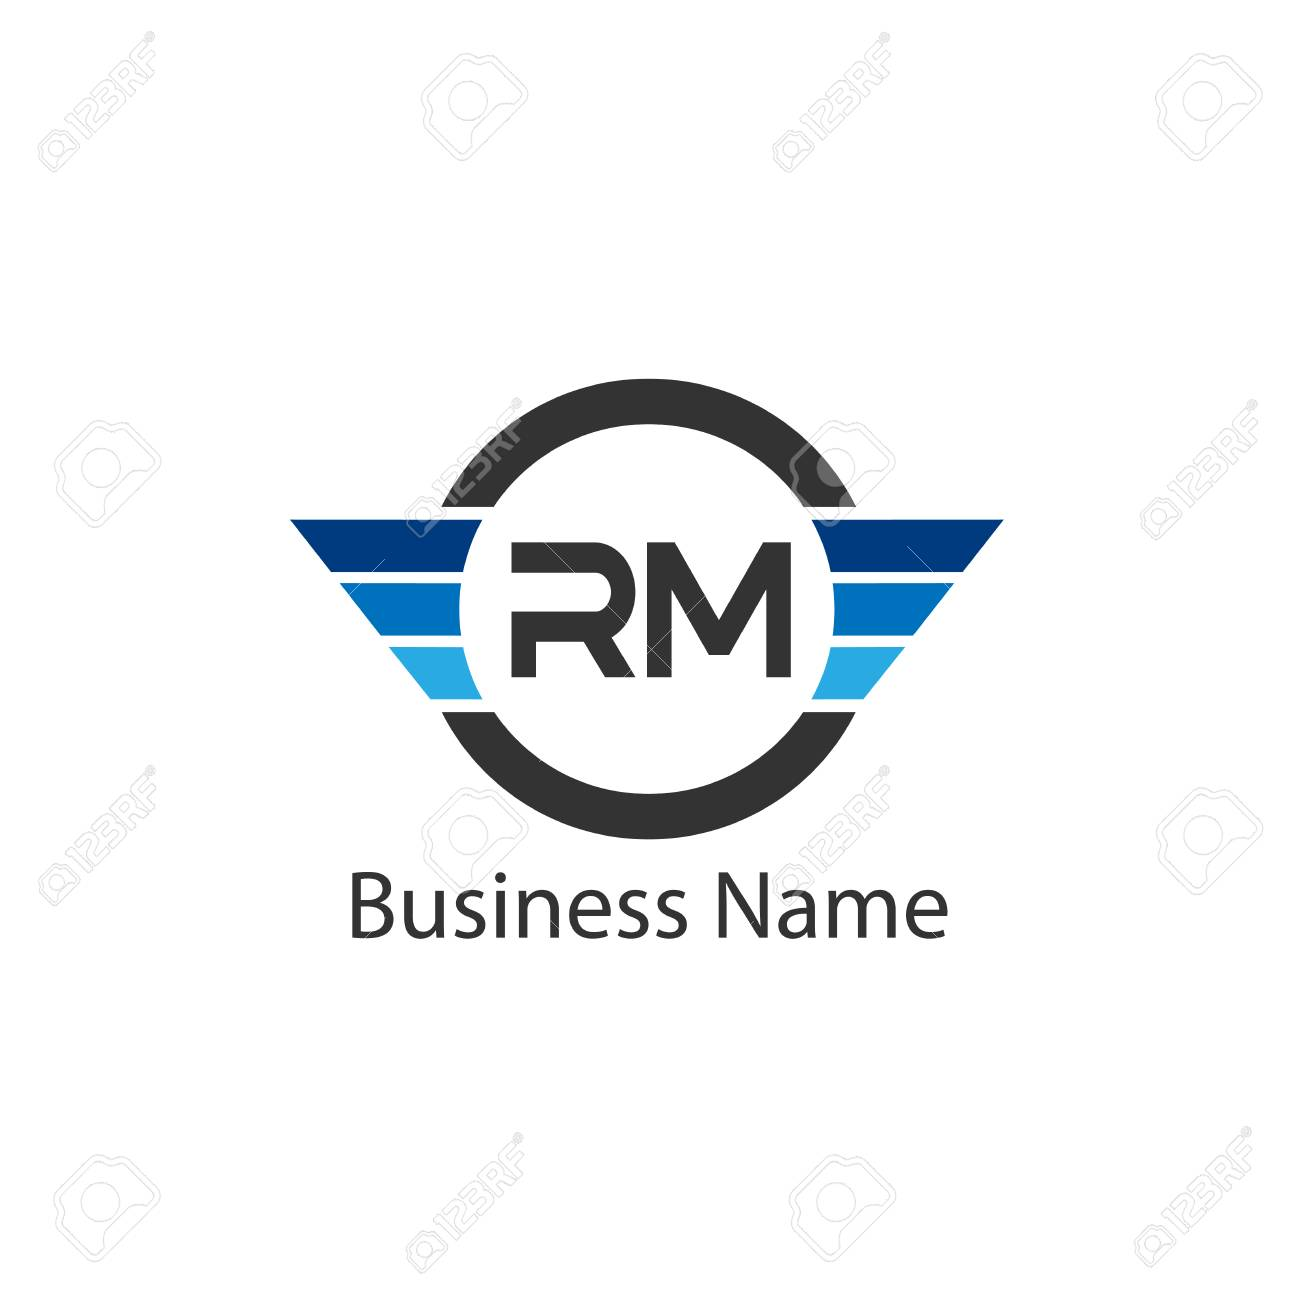 initial letter rm logo template design royalty free cliparts vectors and stock illustration image 109630009 initial letter rm logo template design